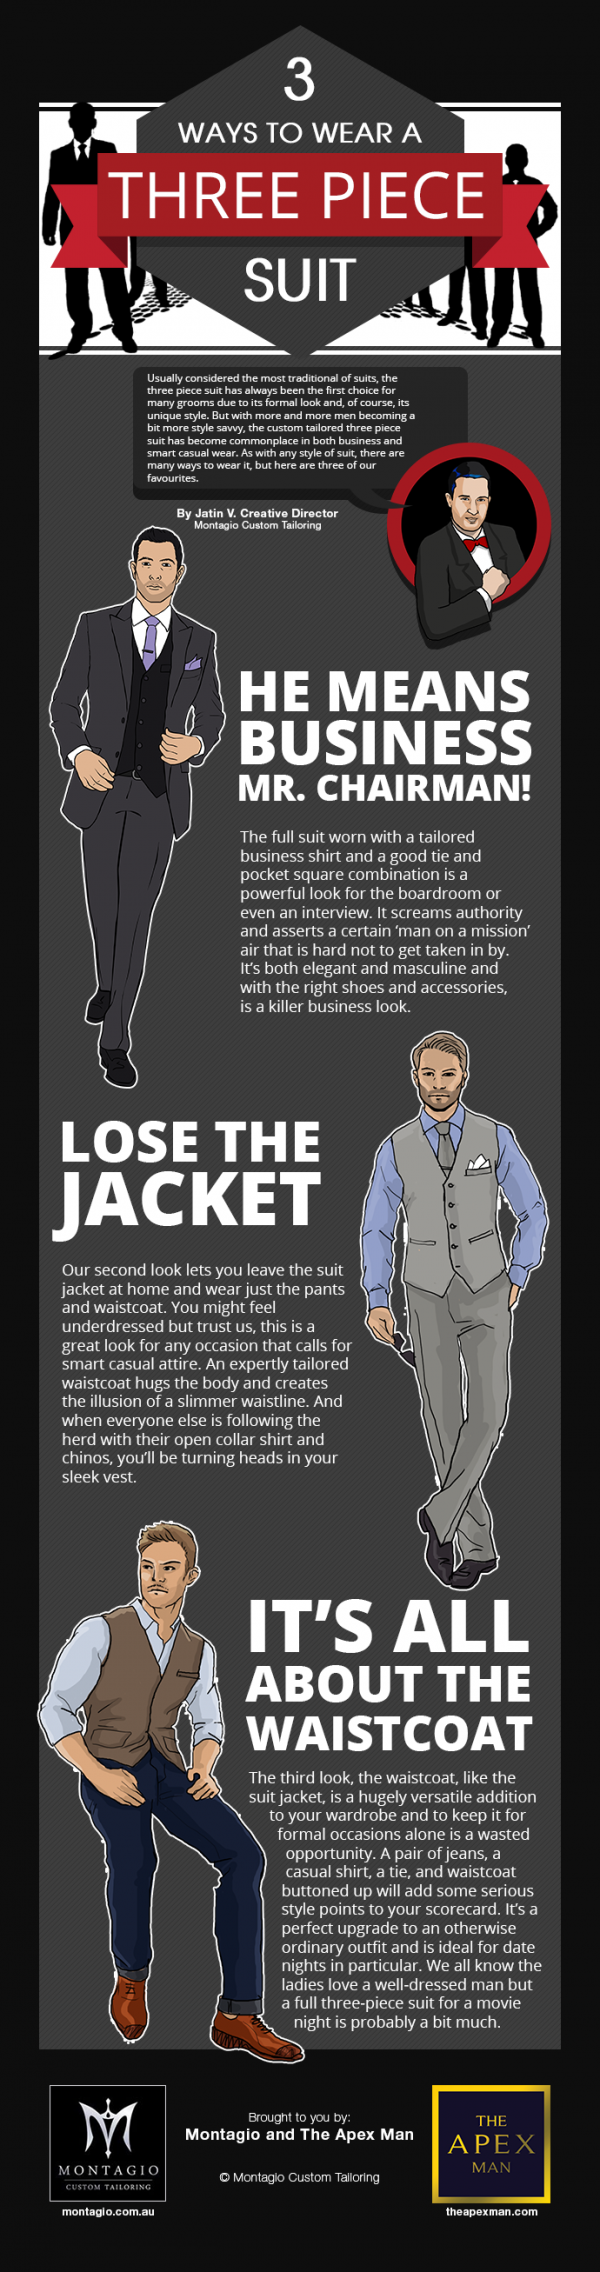 3-ways-to-wear-a-3-piece-suit